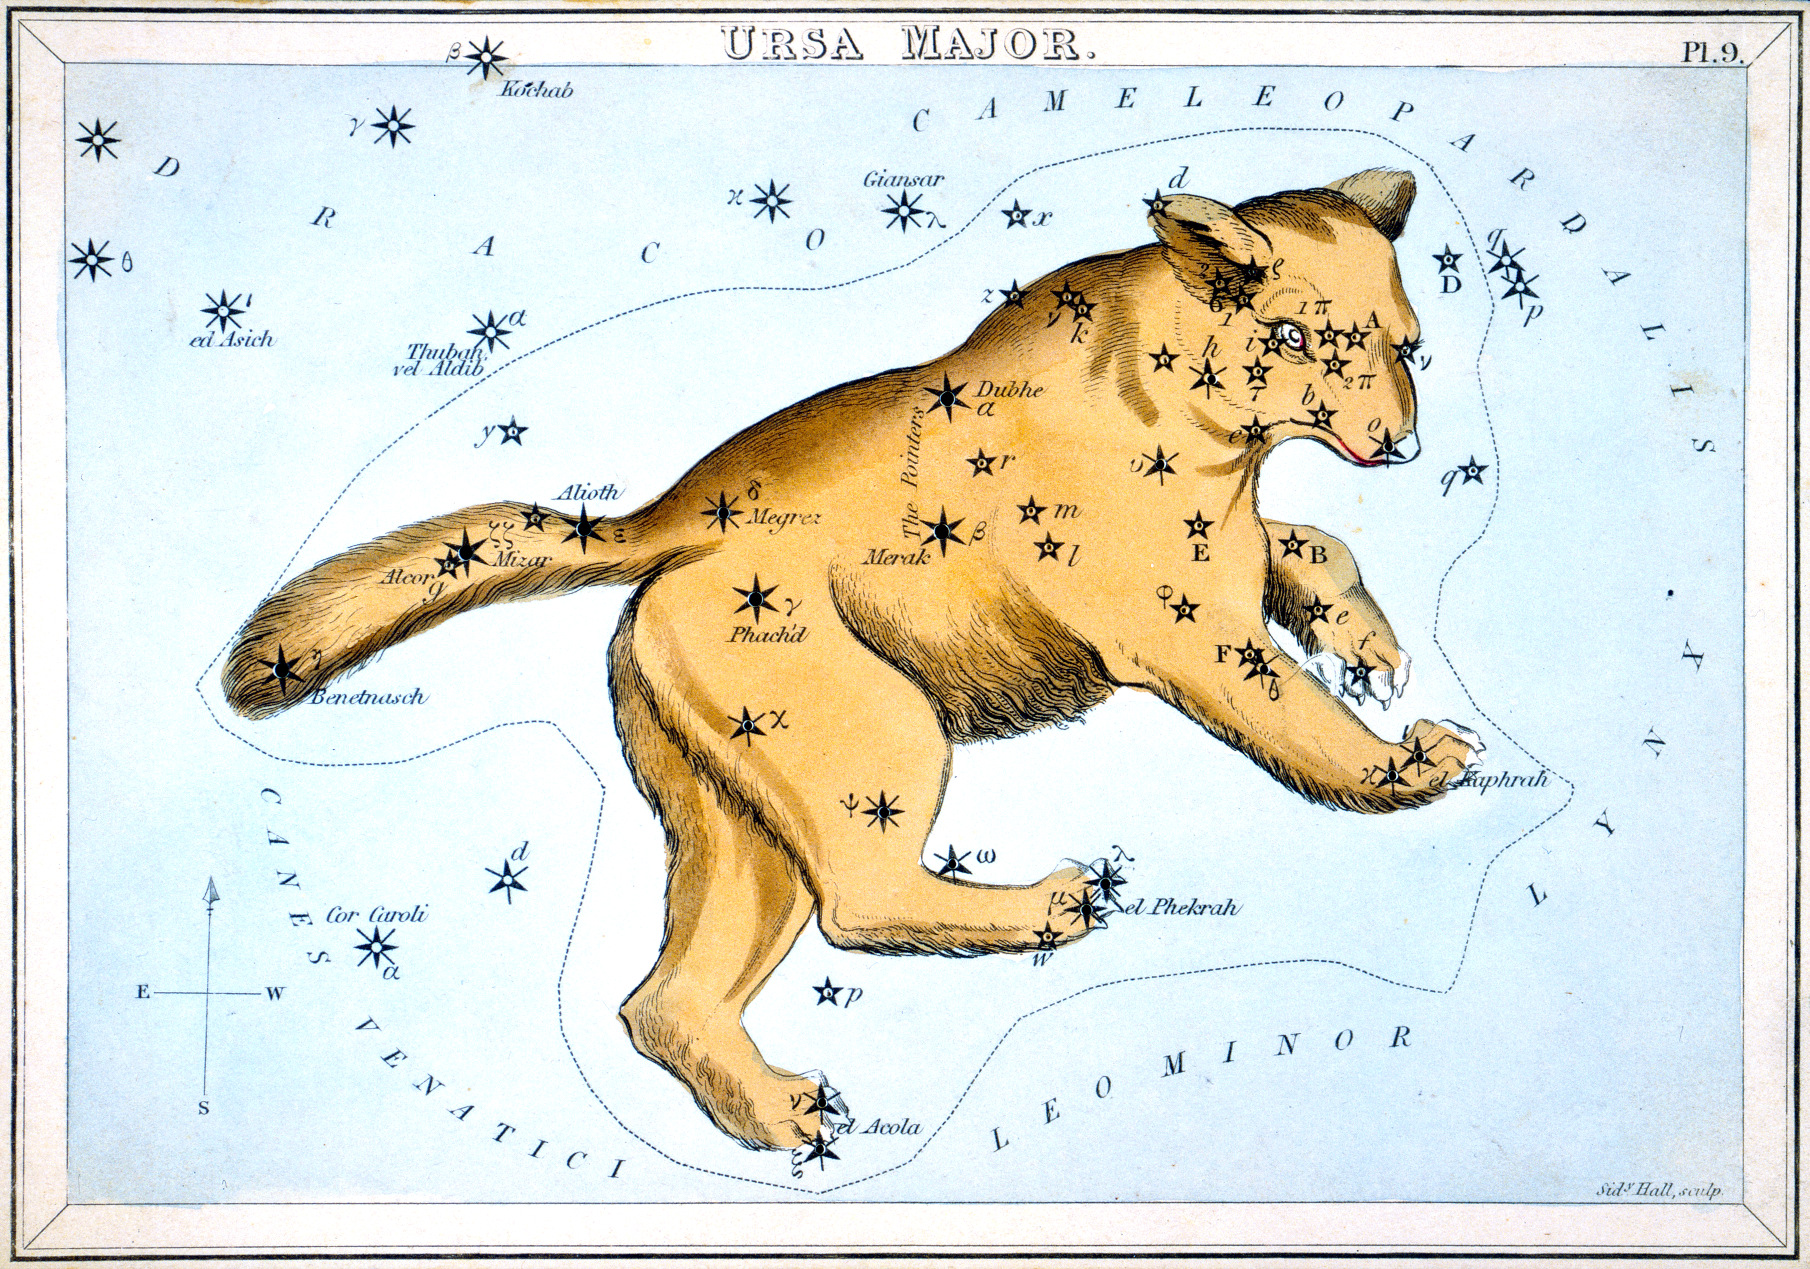 Ursa Major, the constellation of the Great Bear, from Urania's Mirror, a colourful set of constellation cards published by Samuel Leigh in England in 1824. Over the years, the star at the end of the tail has been known by two popular names, Alkaid and Benetnasch. On this card it is called Benetnasch, but the IAU Working Group on Star Names (WGSN) has chosen the more common alternative of Alkaid as its official name. Among the star names on this 1824 map of Ursa Major that are recognised by the IAU as official proper names are Alcor, Alioth, Dubhe, Megrez, Merak, and Mizar.  Other names on this map have been included in a growing database of cultural and historical names for stars, and some of these may eventually be adopted as official IAU names after further research and deliberation by the WGSN. Illustration credit: IAU.